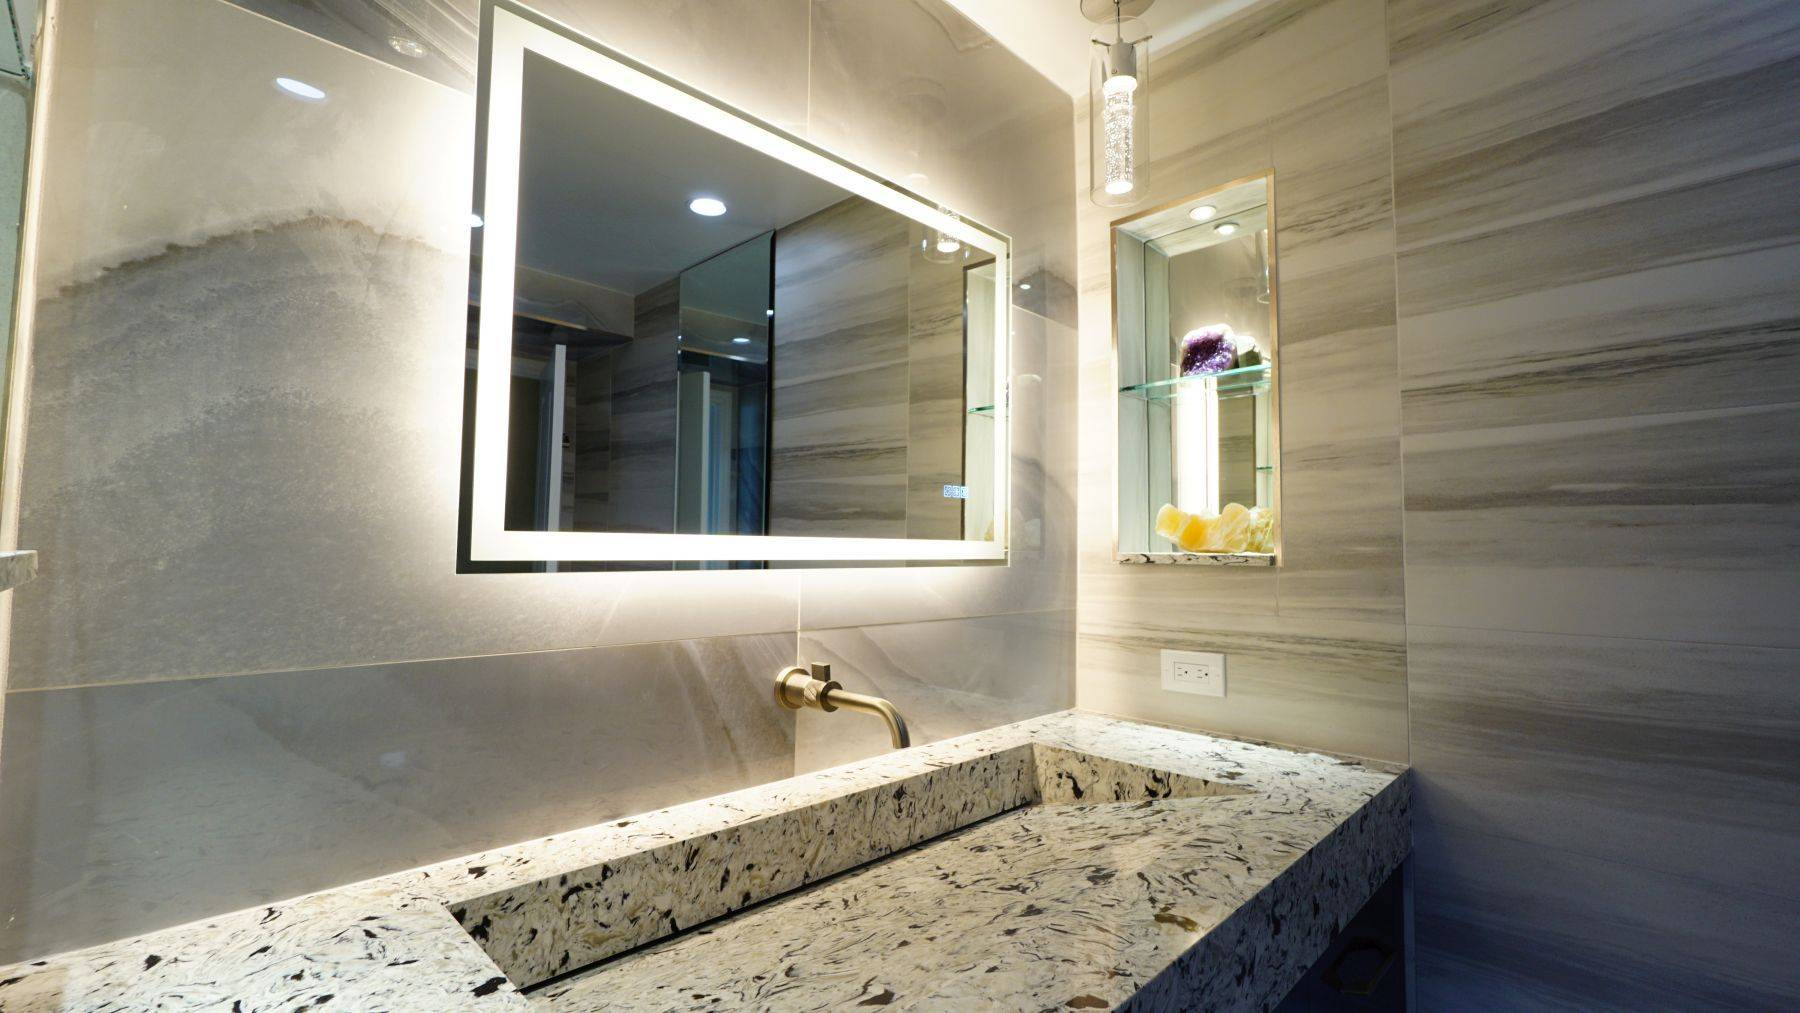 Granite sink with backlit mirror adding with Bathroom Remodeling in Pompano Beach